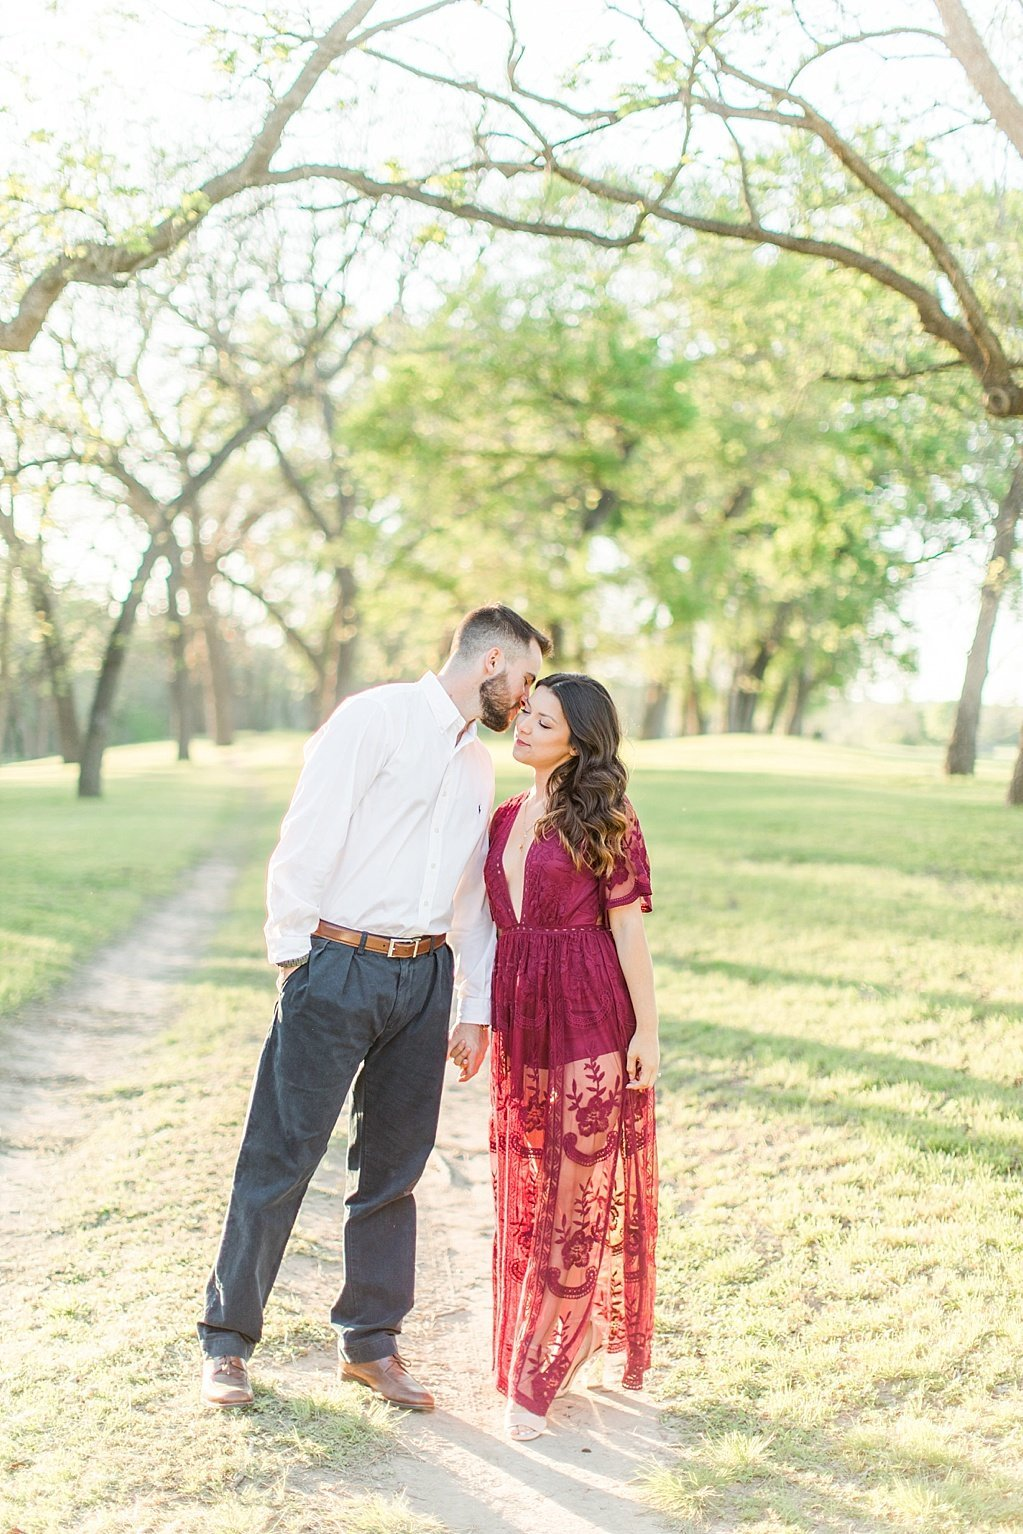 Eagle Dancer Ranch Engagement Photo Session in Boerne, Texas by Allison Jeffers Photography_0028